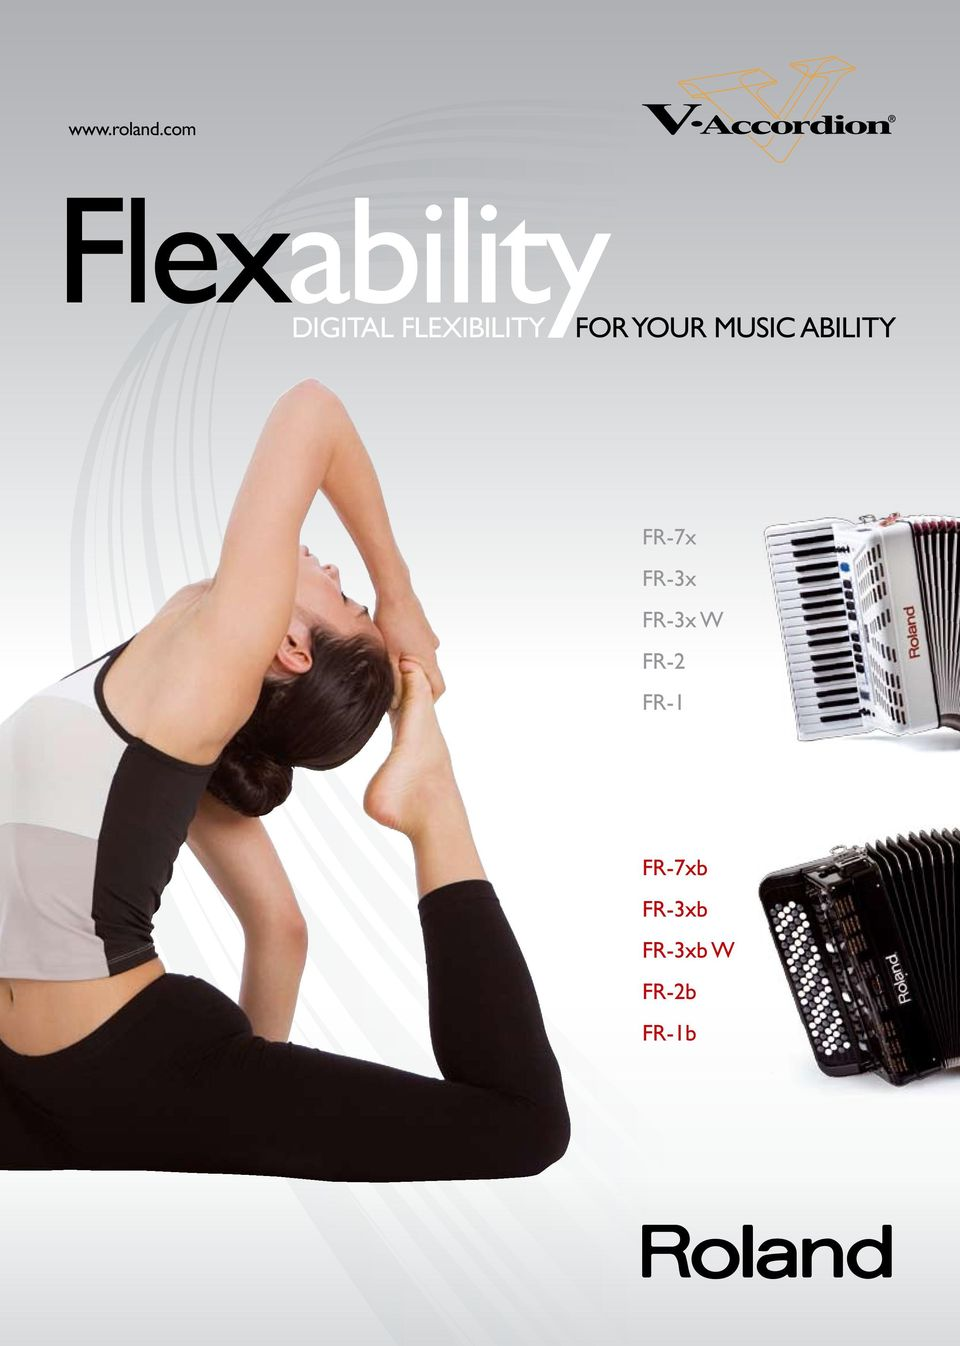 FLEXIBILITY FOR YOUR MUSIC